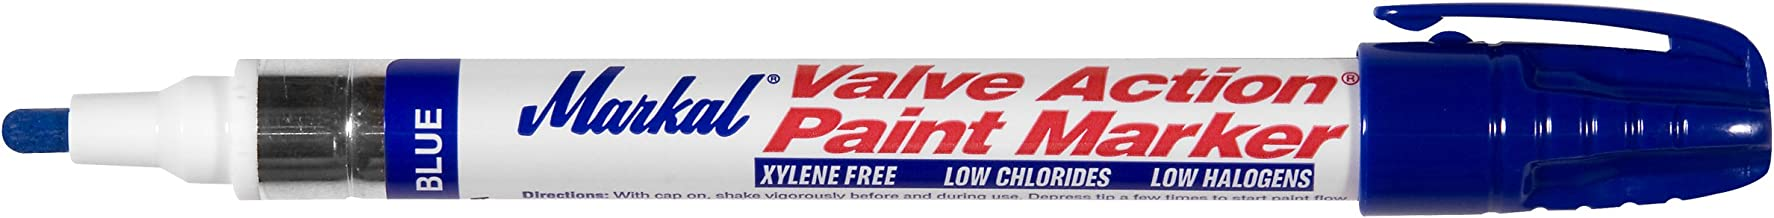 Markal 96825 Valve Action Paint Marker with 1/8